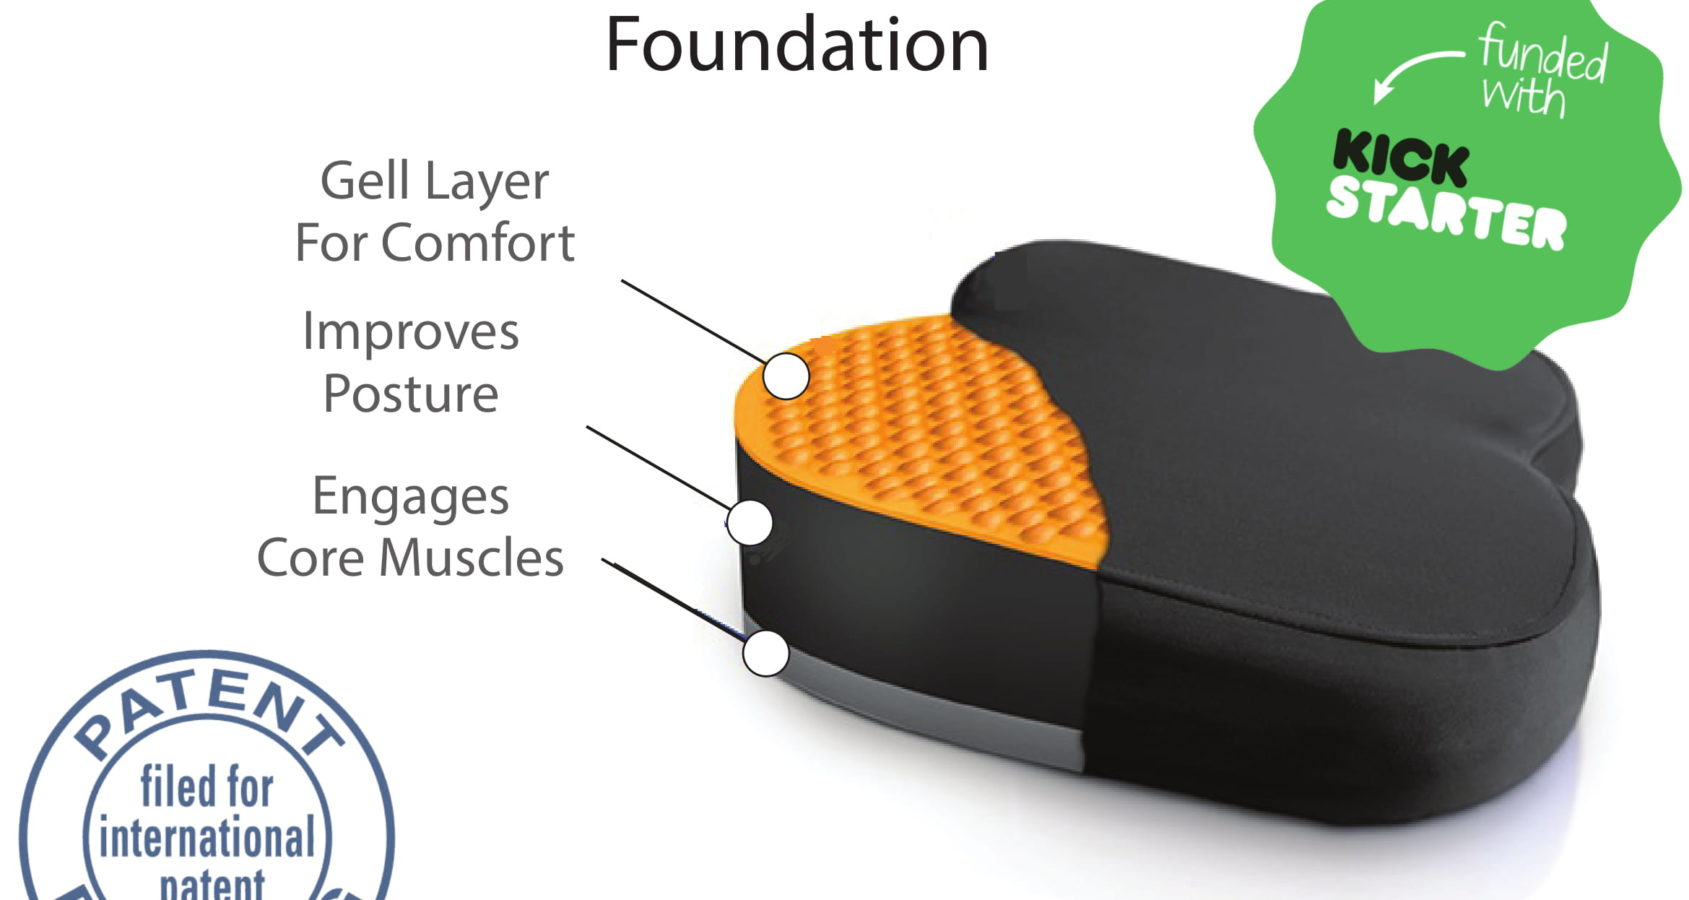 FOUNDATION ALLOWS FOR ALL DAY SUPPORT BY: · Promotes good posture · Restores your lumbar curve · Engages core muscles and transfers stress from the spinal muscles · Aligns ears over shoulders reducing forward head translation · Portable and easy to transport helping to make every chair ergonomic